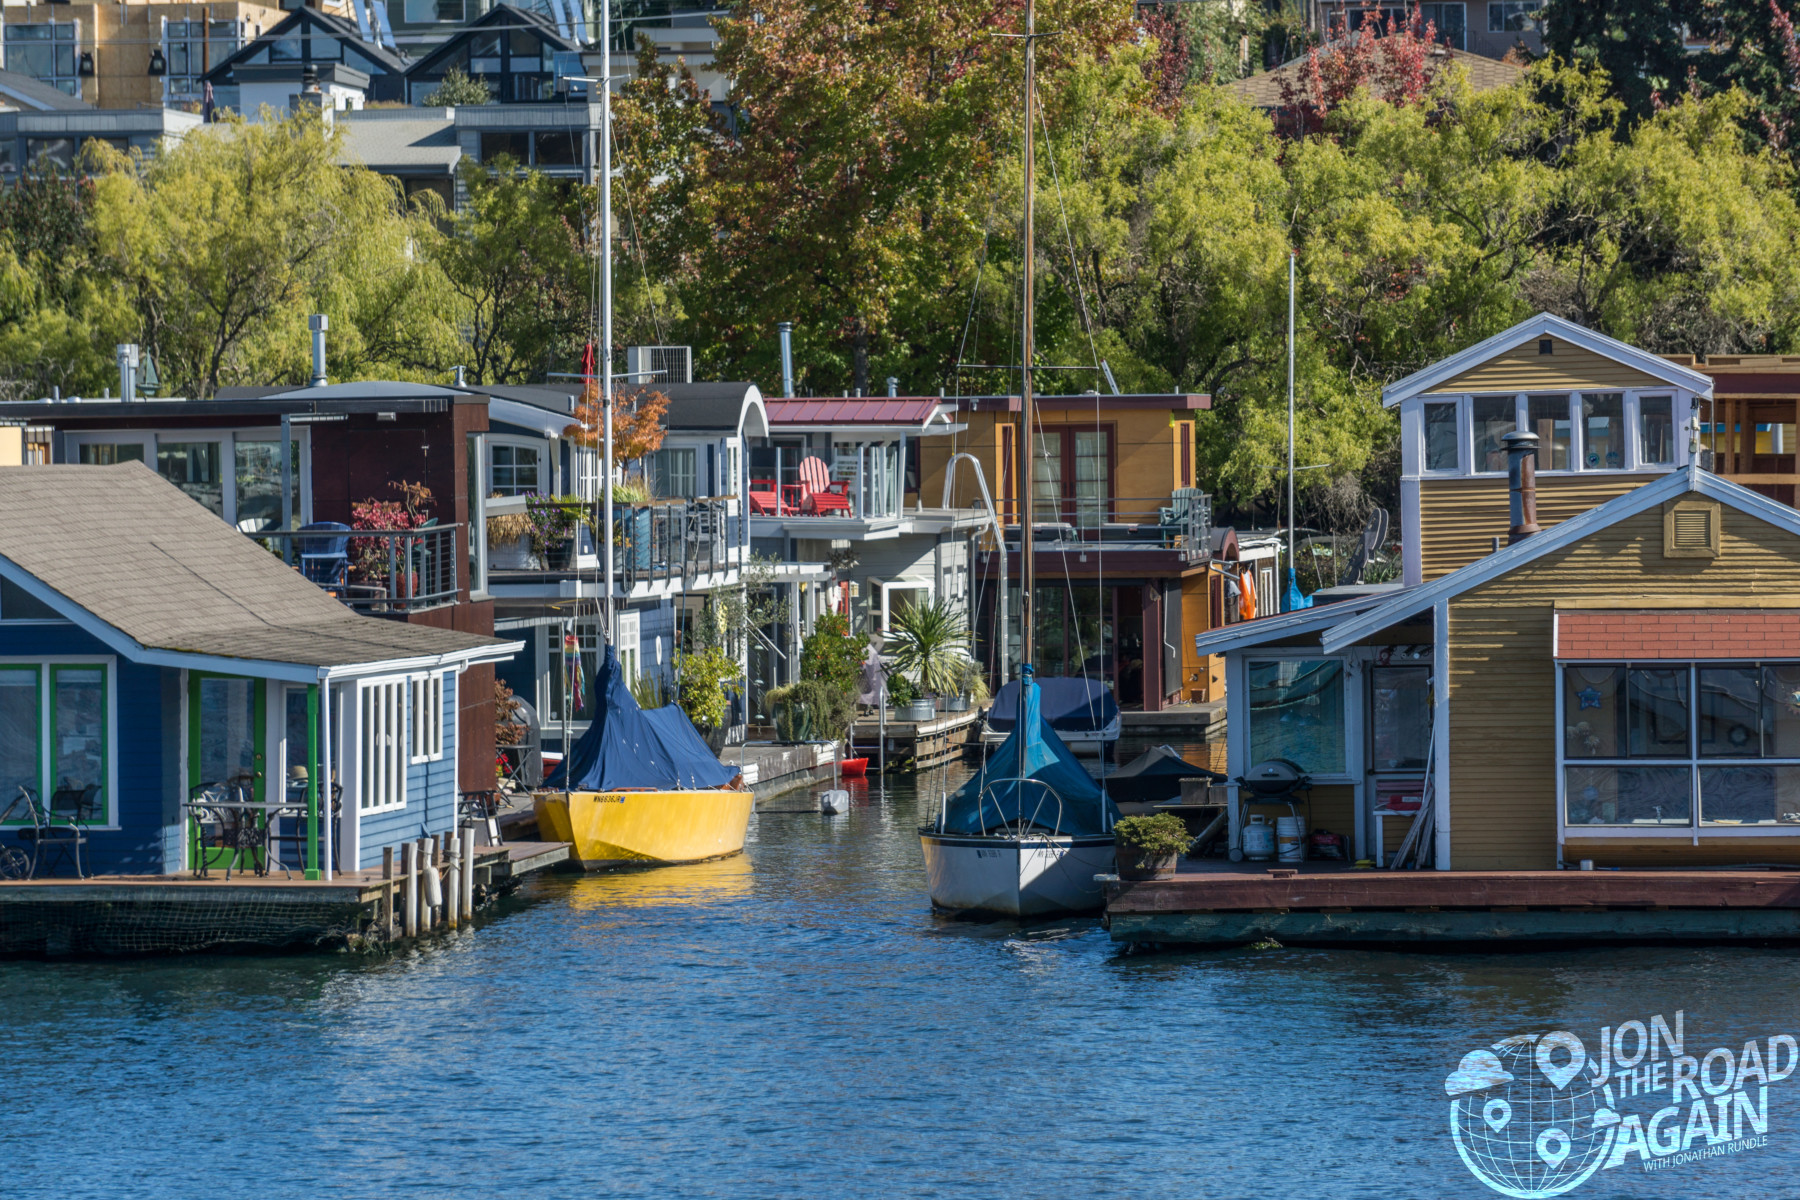 Lake Union Houseboats in Seattle